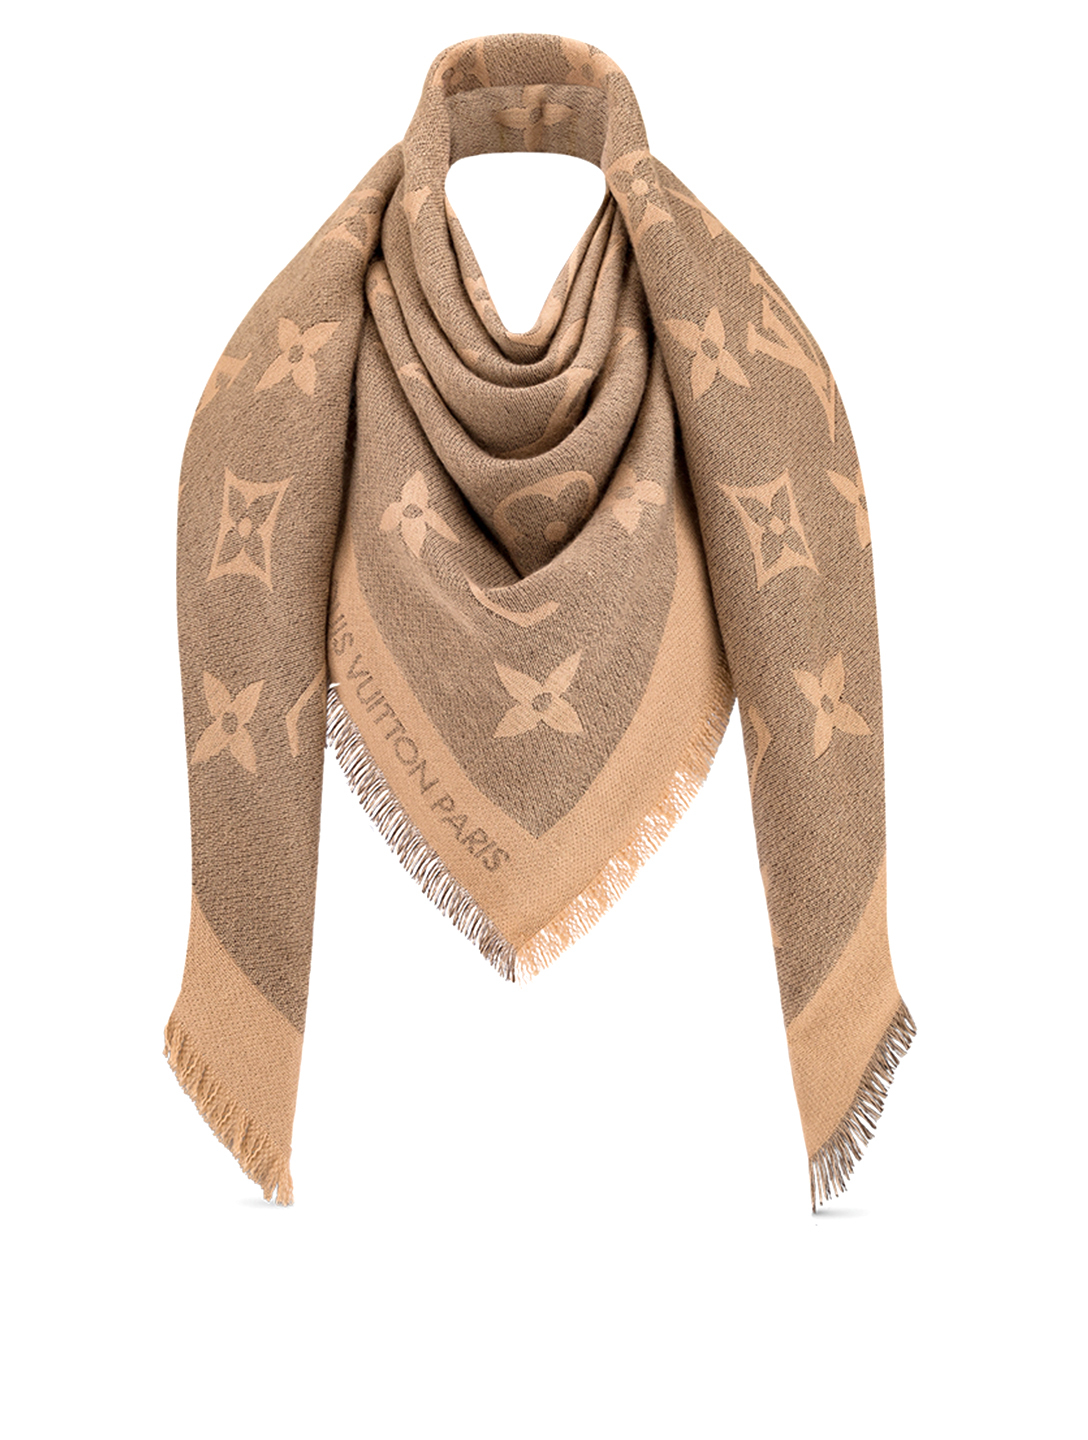 LOUIS VUITTON Monogram Giant Shawl Designers